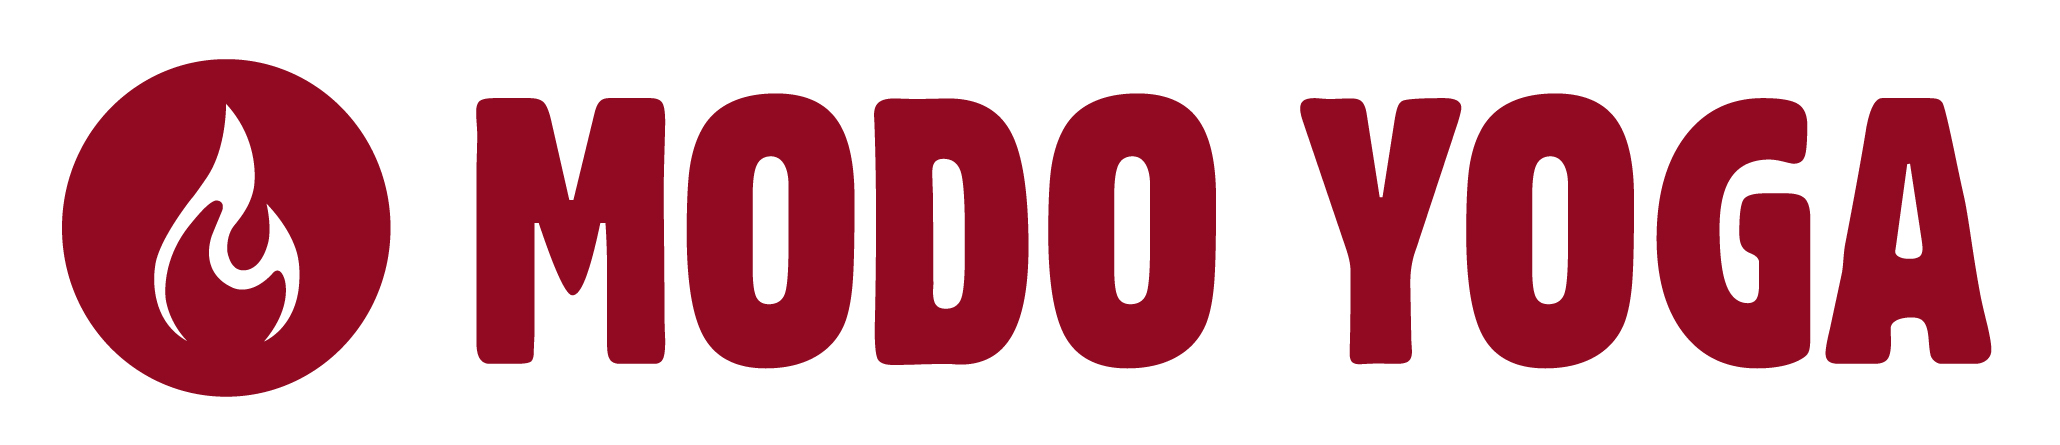 ModoYoga-logo-2018-full-red.jpg